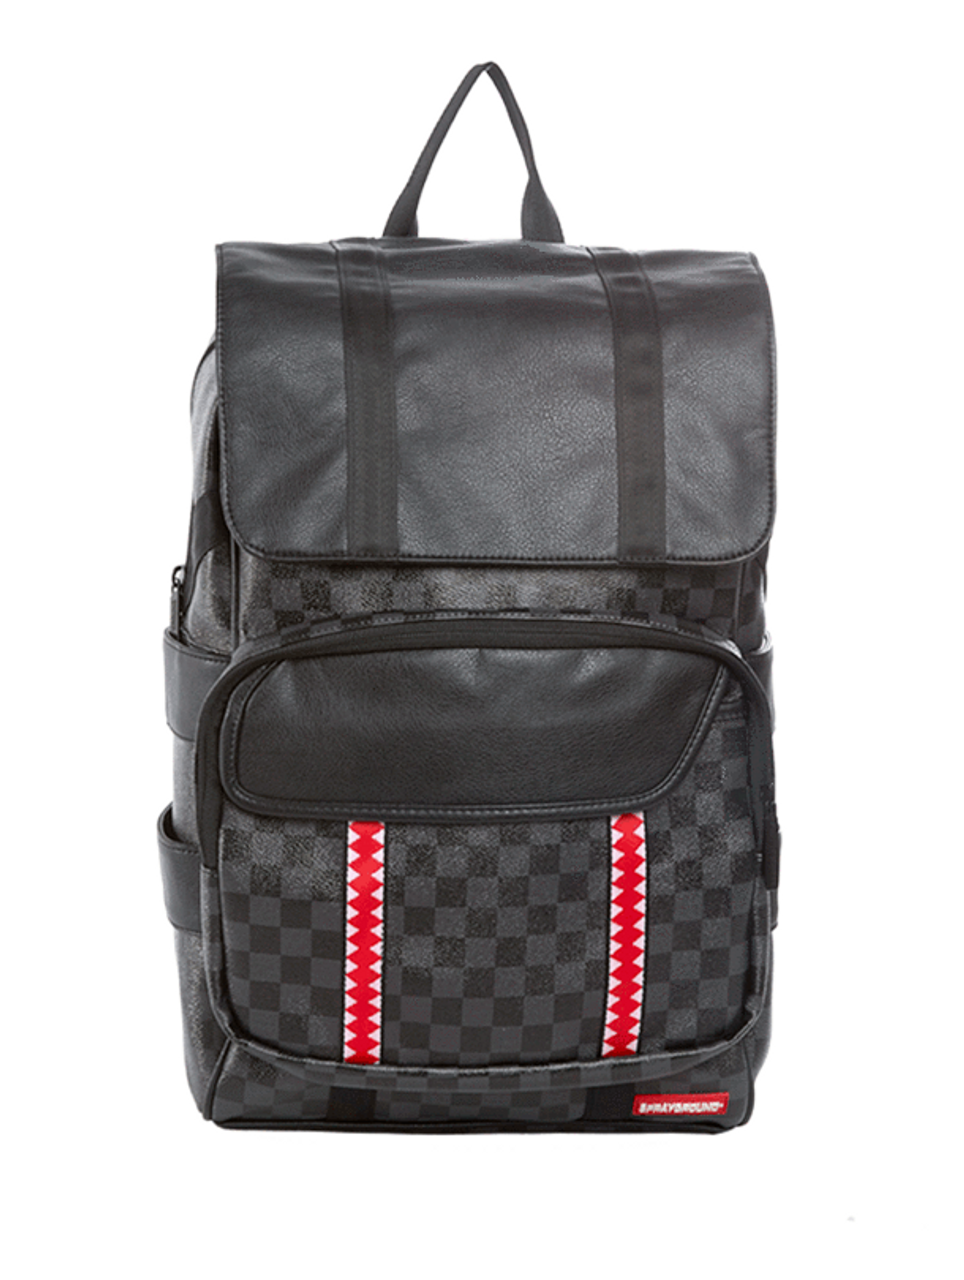 3602c161ce3c Sprayground Sharks In Paris Black Damier Pattern Rucksack Backpack  910B1318NSZ - Fearless Apparel